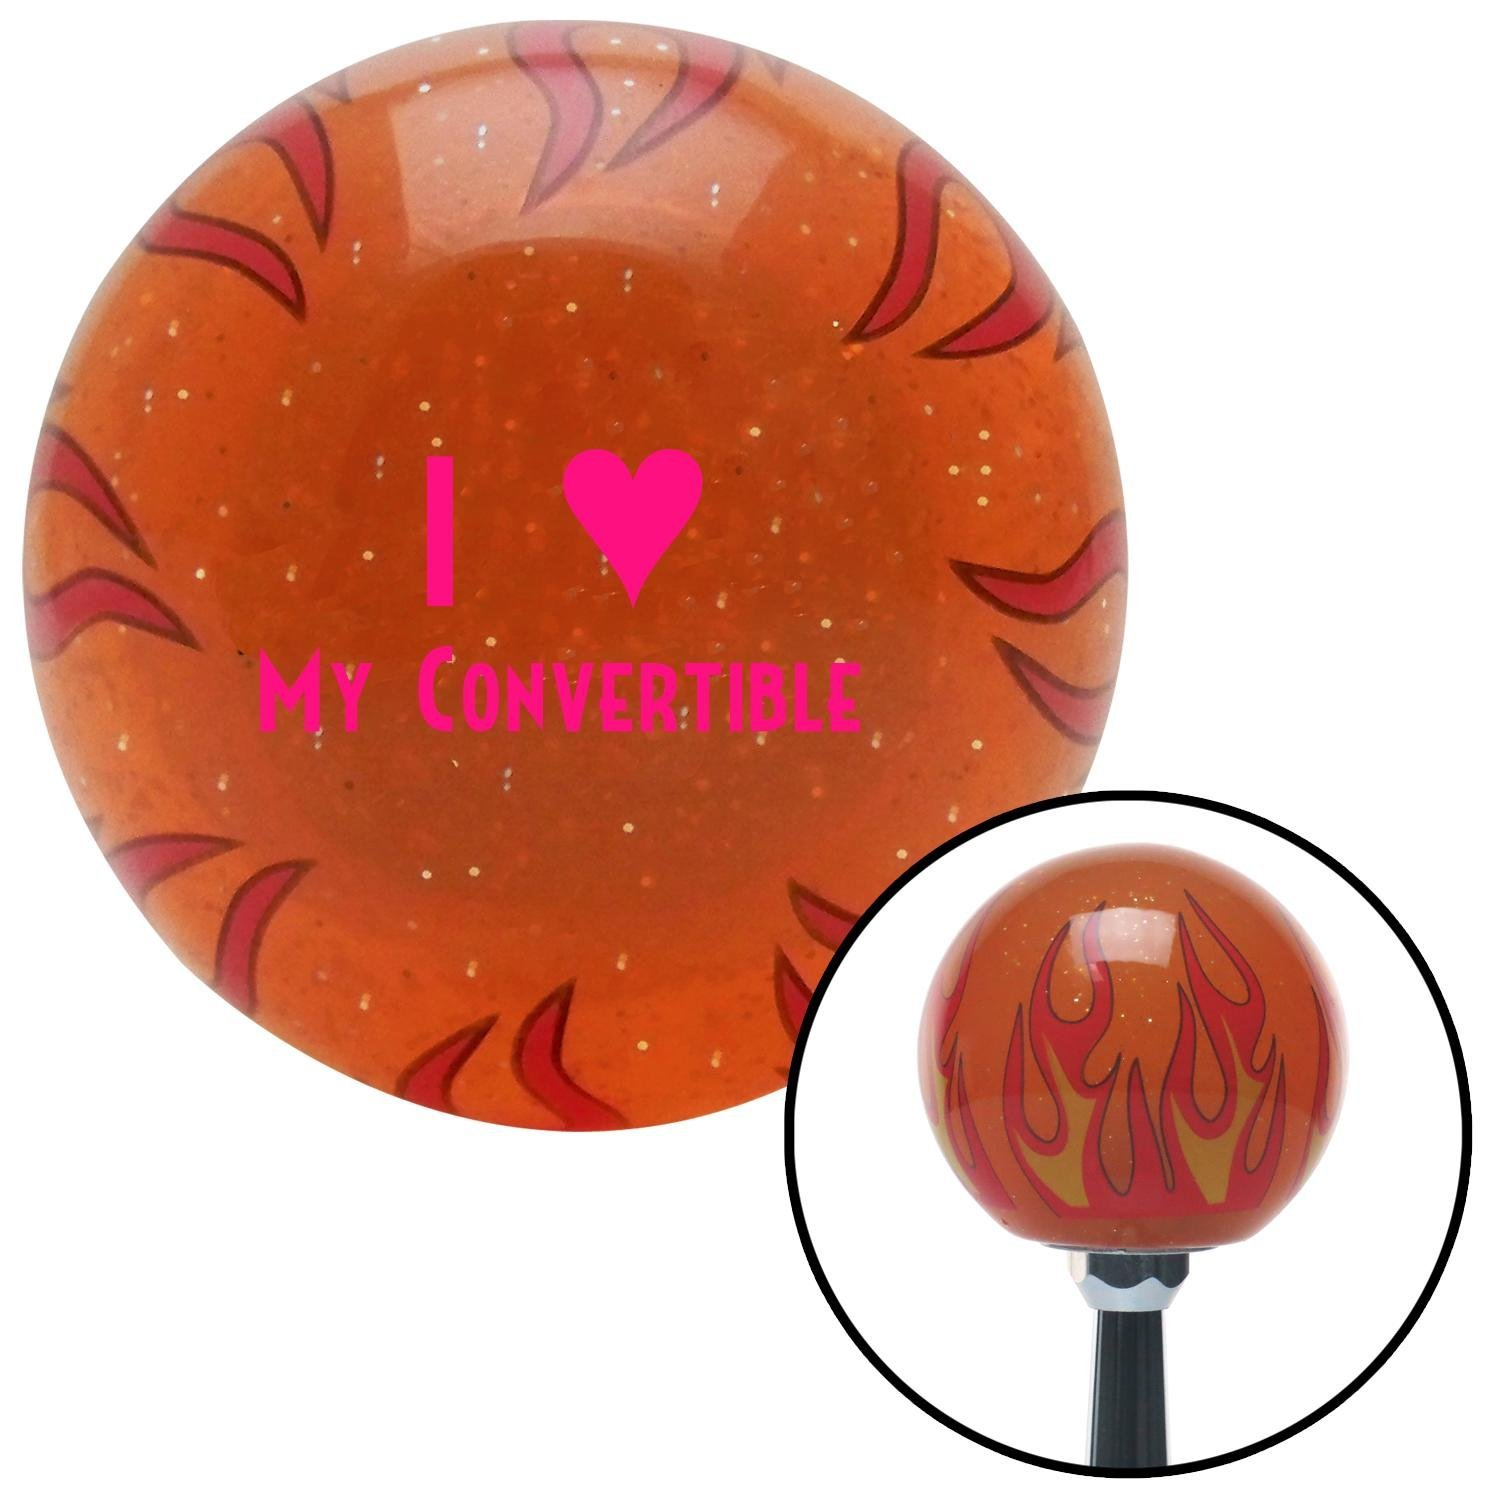 American Shifter 253809 Orange Flame Metal Flake Shift Knob with M16 x 1.5 Insert Pink I 3 My Convertible